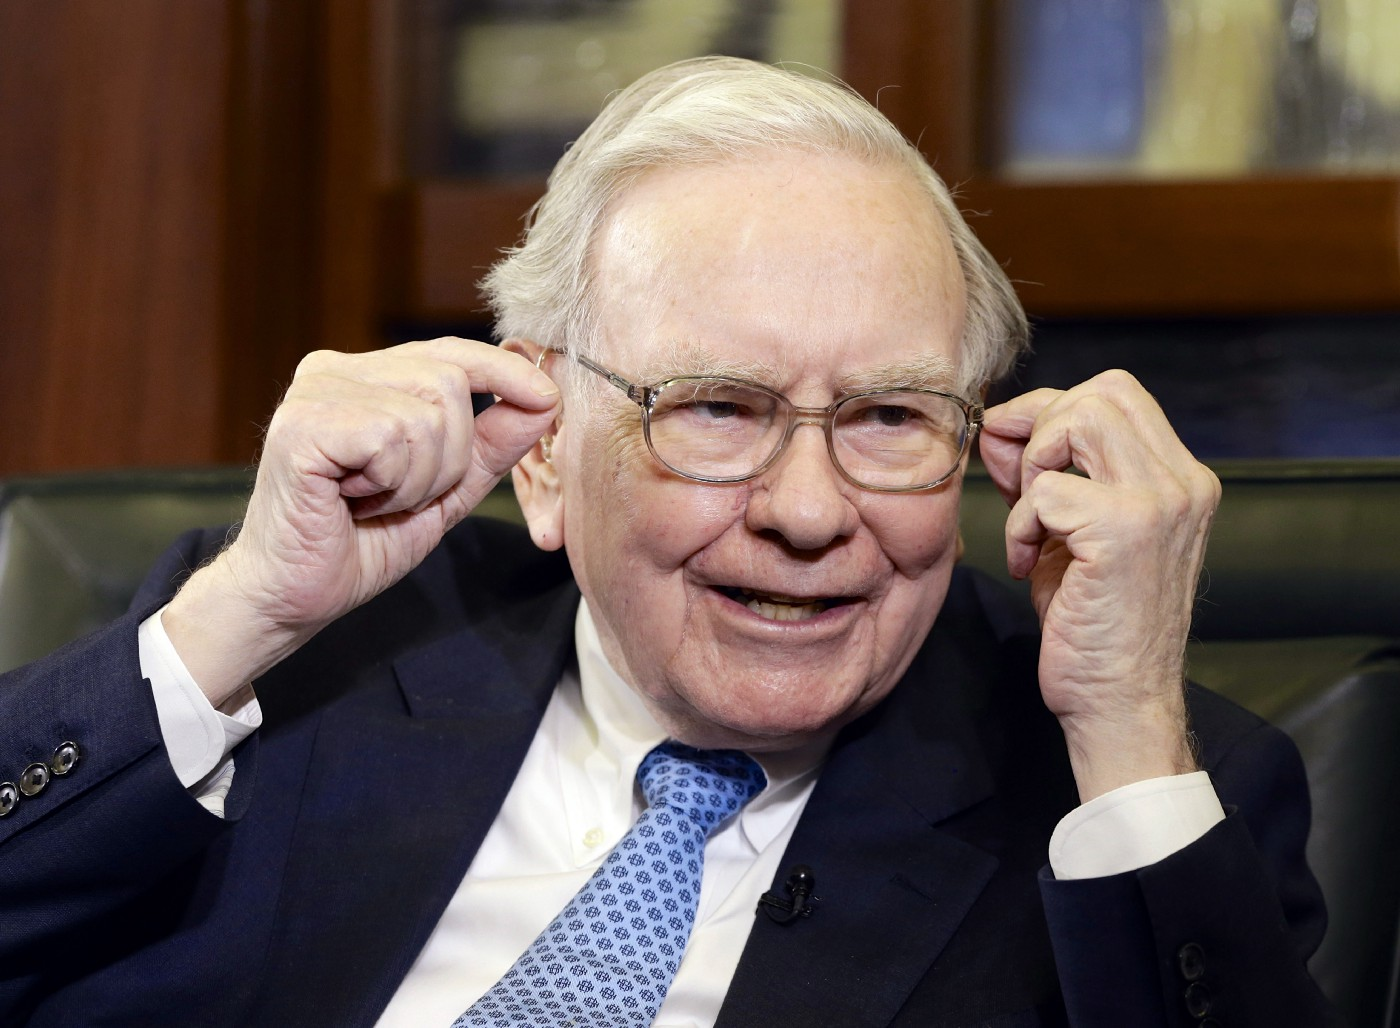 Berkshire Hathaway Bought Back $43.4 Billion Of Its Shares—Is It a Sign That Stock Market Is Overvalued?